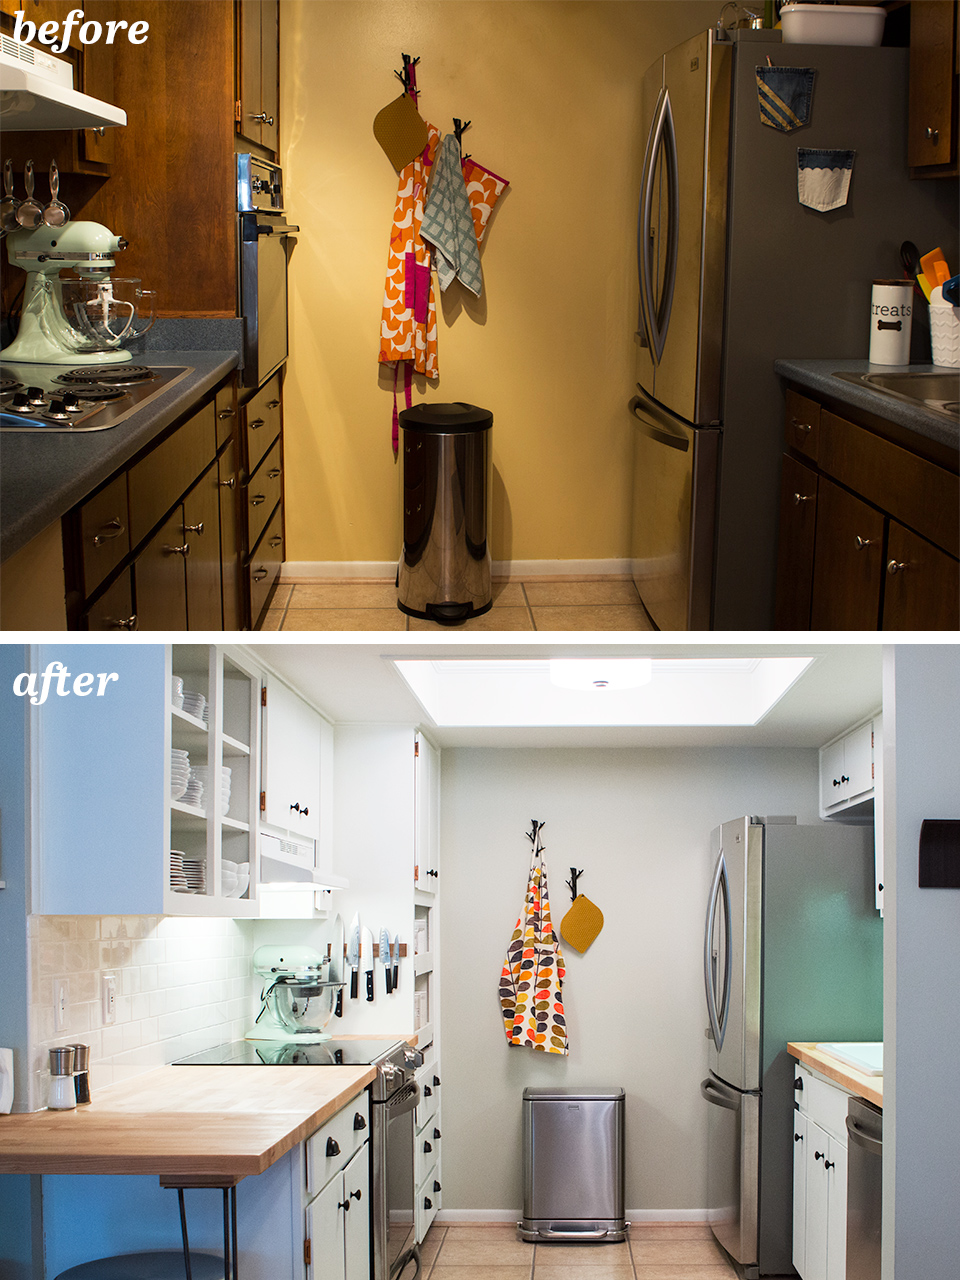 Galley Kitchen Before And After Diy Small Galley Kitchen Remodel  Sarah Hearts